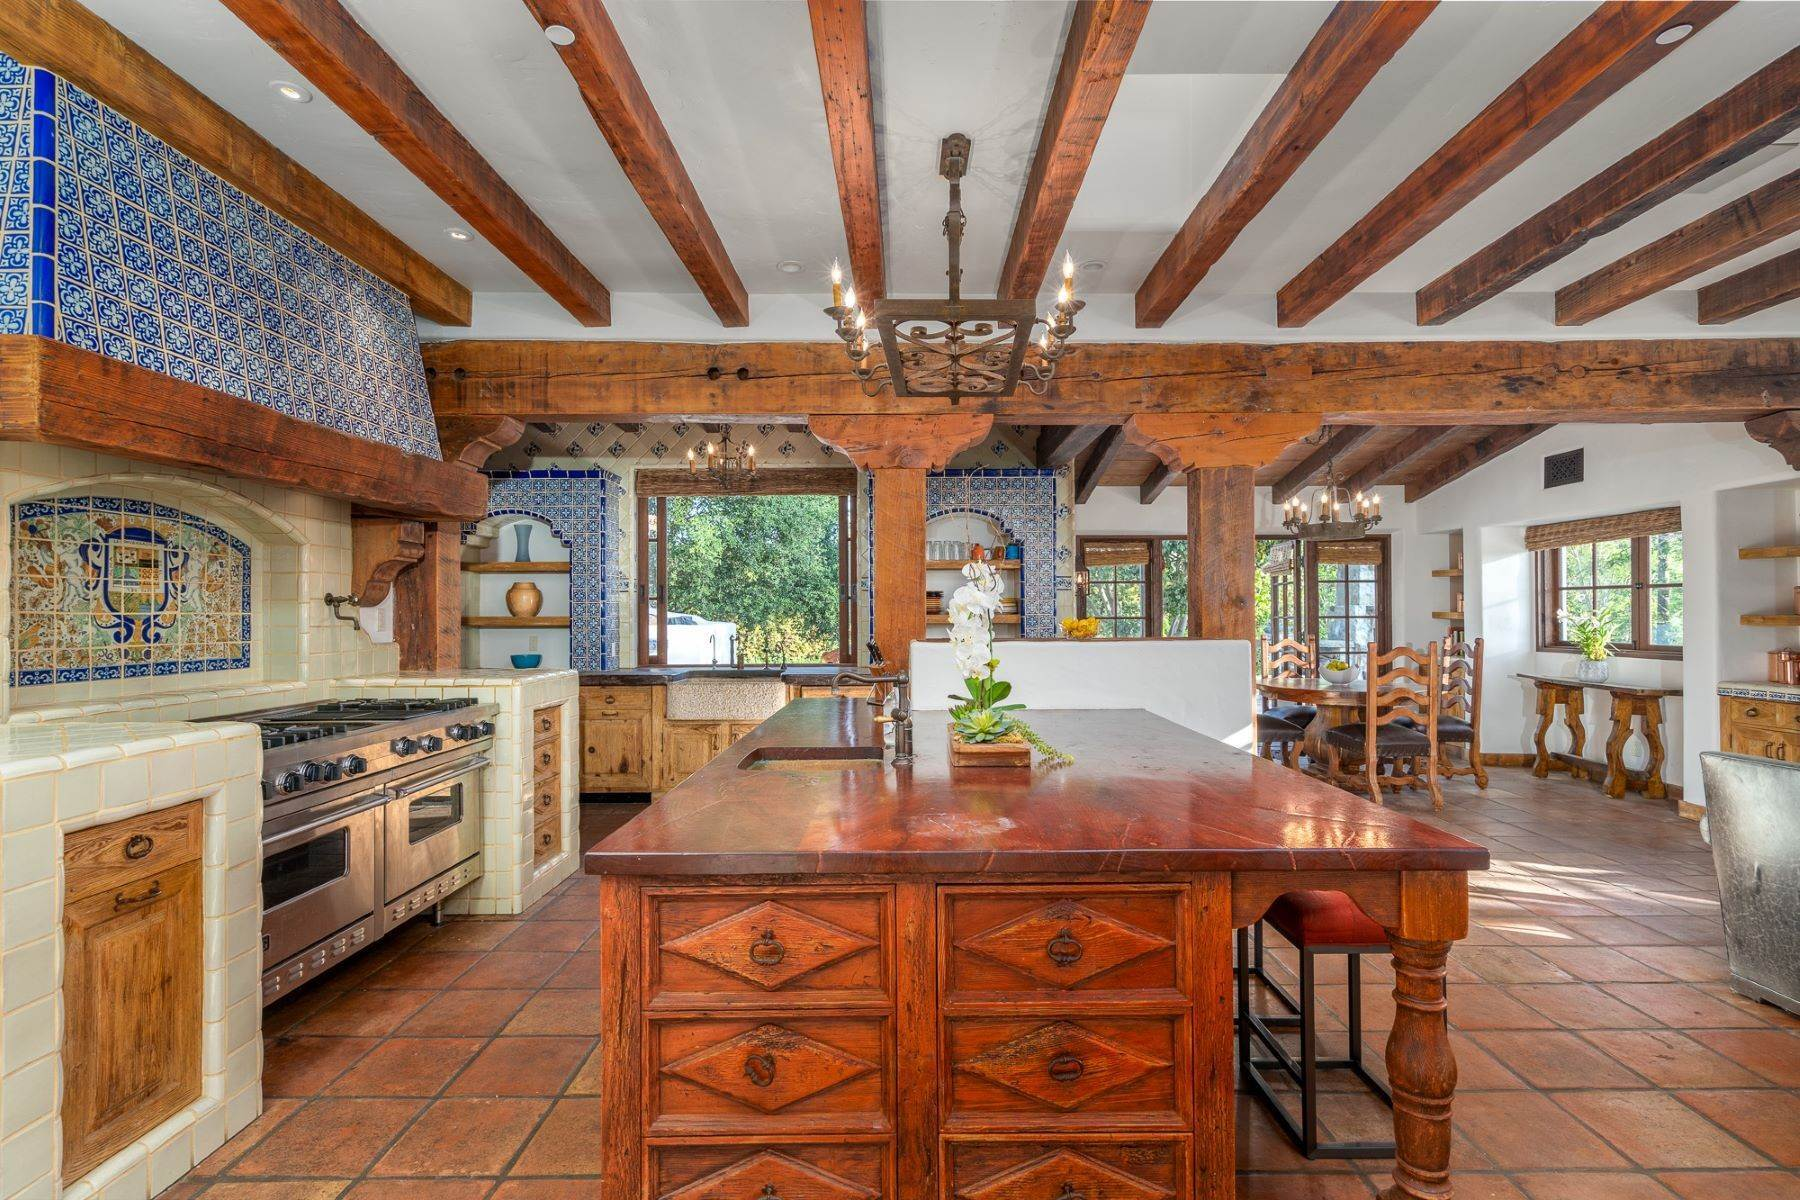 18. Single Family Homes for Sale at 17515 Avenida De Acacias, Rancho Santa Fe, CA 92067 17515 Avenida De Acacias Rancho Santa Fe, California 92067 United States